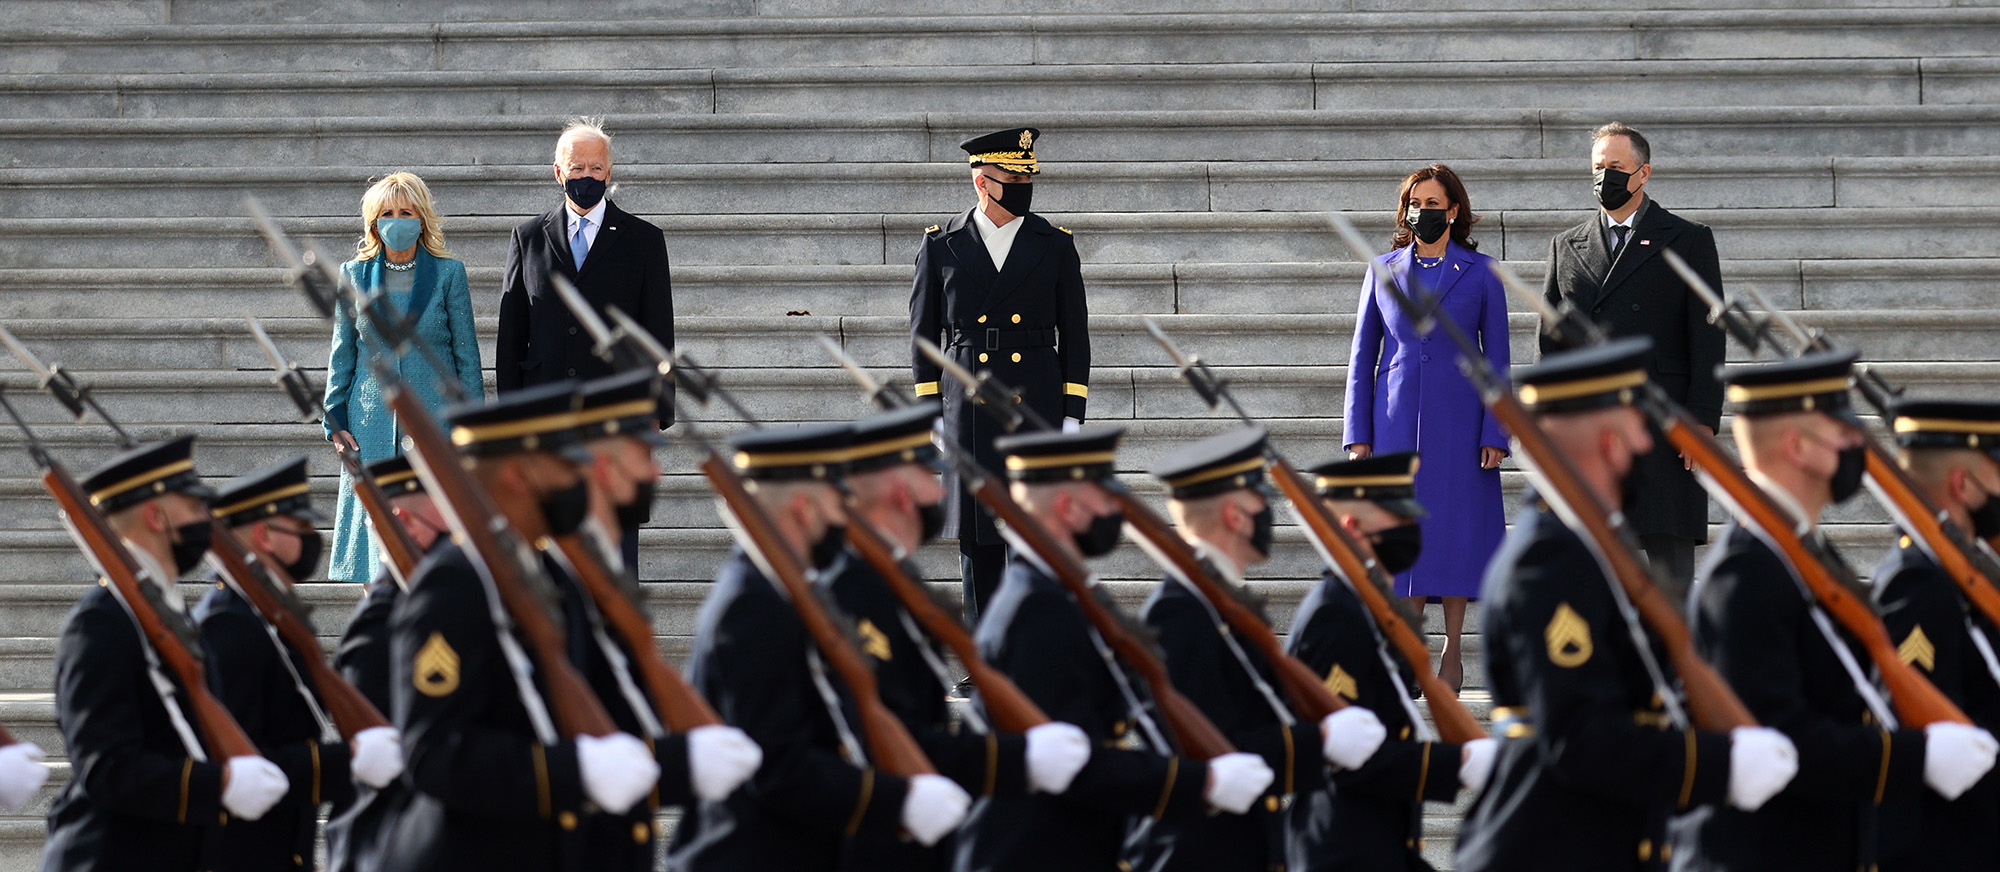 From left to right: first lady Dr. Jill Biden, President Joe Biden, Vice President Kamala Harris, and Doug Emhoffl, Harris' husband, watch a military pass-in-review during the inauguration on the West Front of the Capitol on January 20, 2021 in Washington. (Joe Raedle/Getty Images)